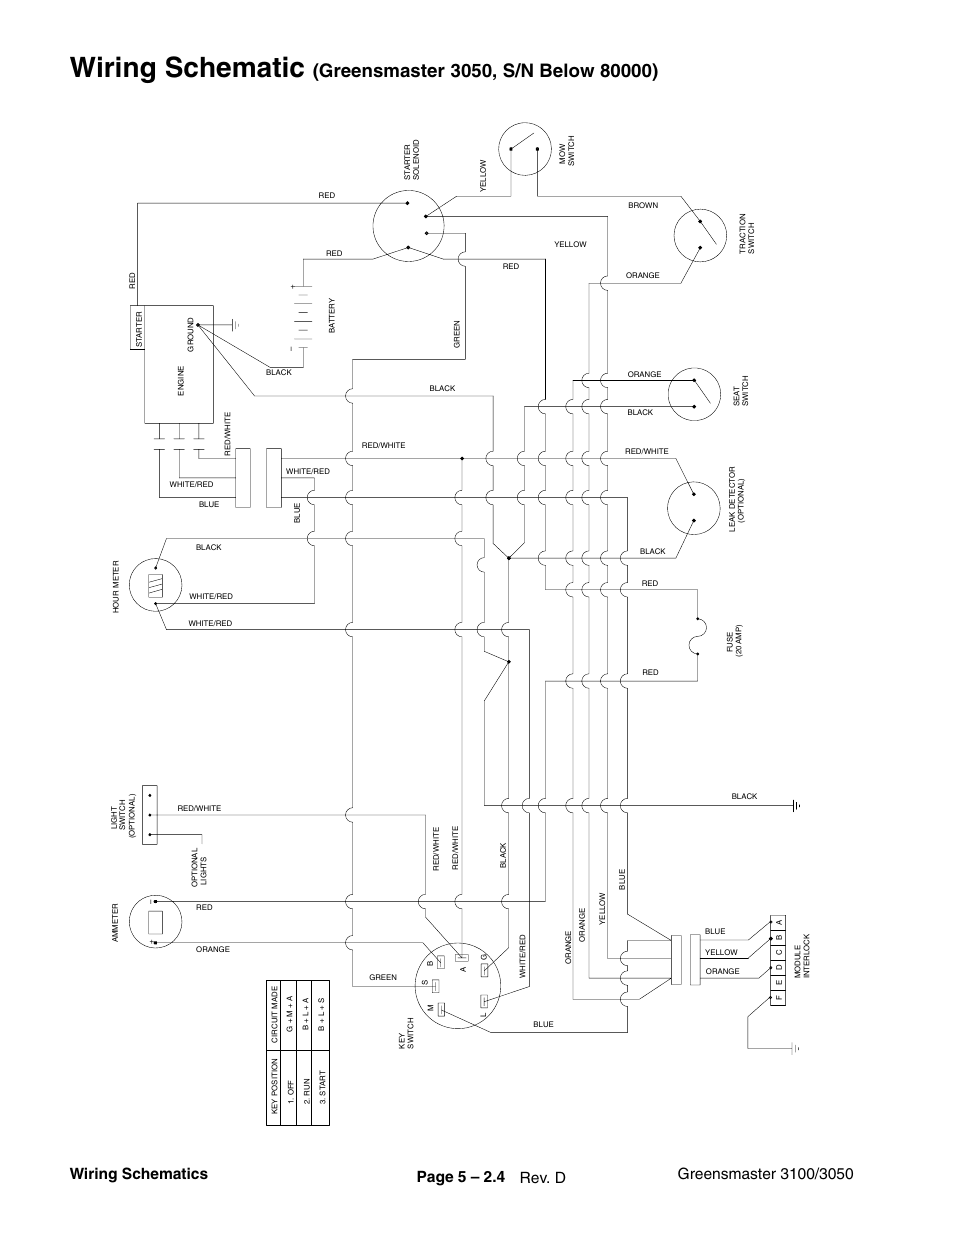 hight resolution of wiring schematic toro greensmaster 3100 user manual page 106 234toro schematics 10